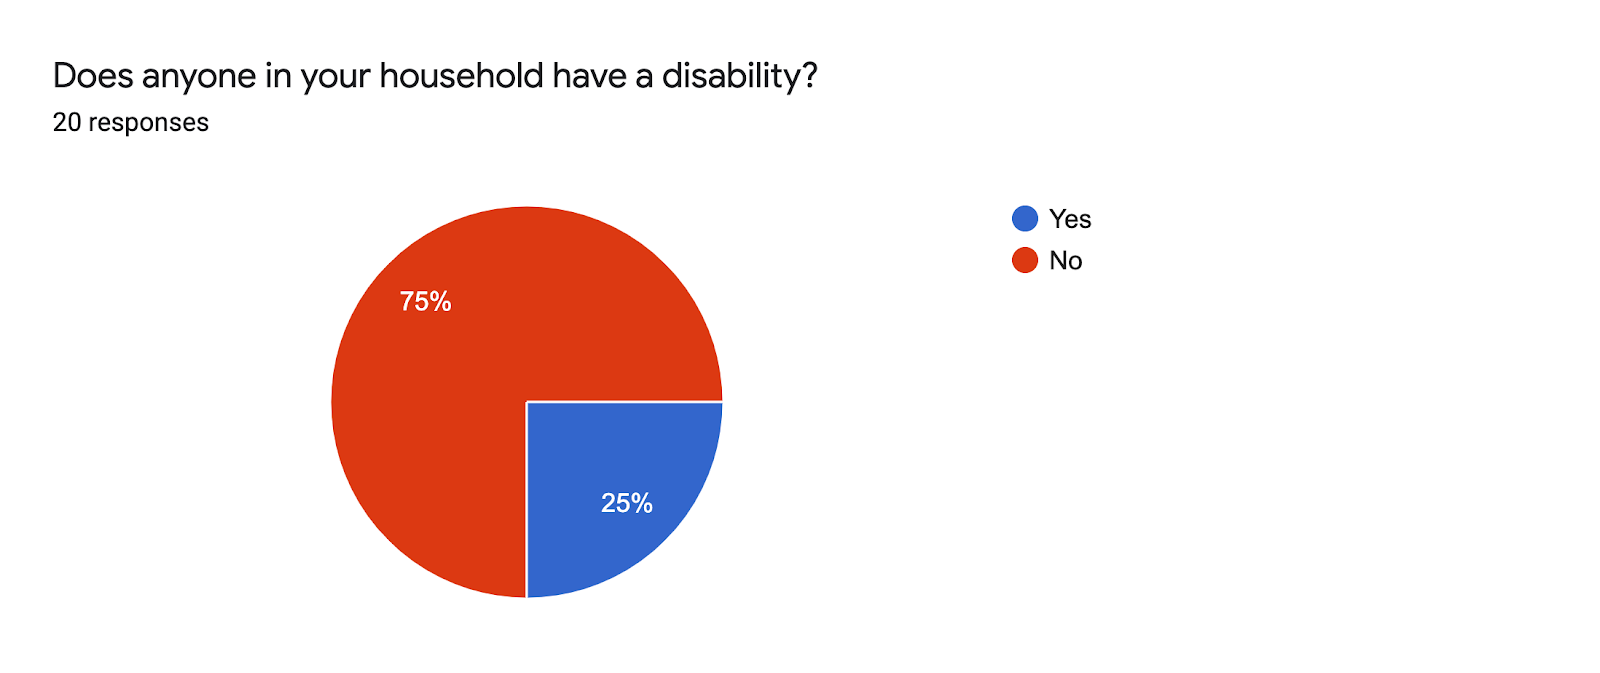 Forms response chart. Question title: Does anyone in your household have a disability?. Number of responses: 20 responses.